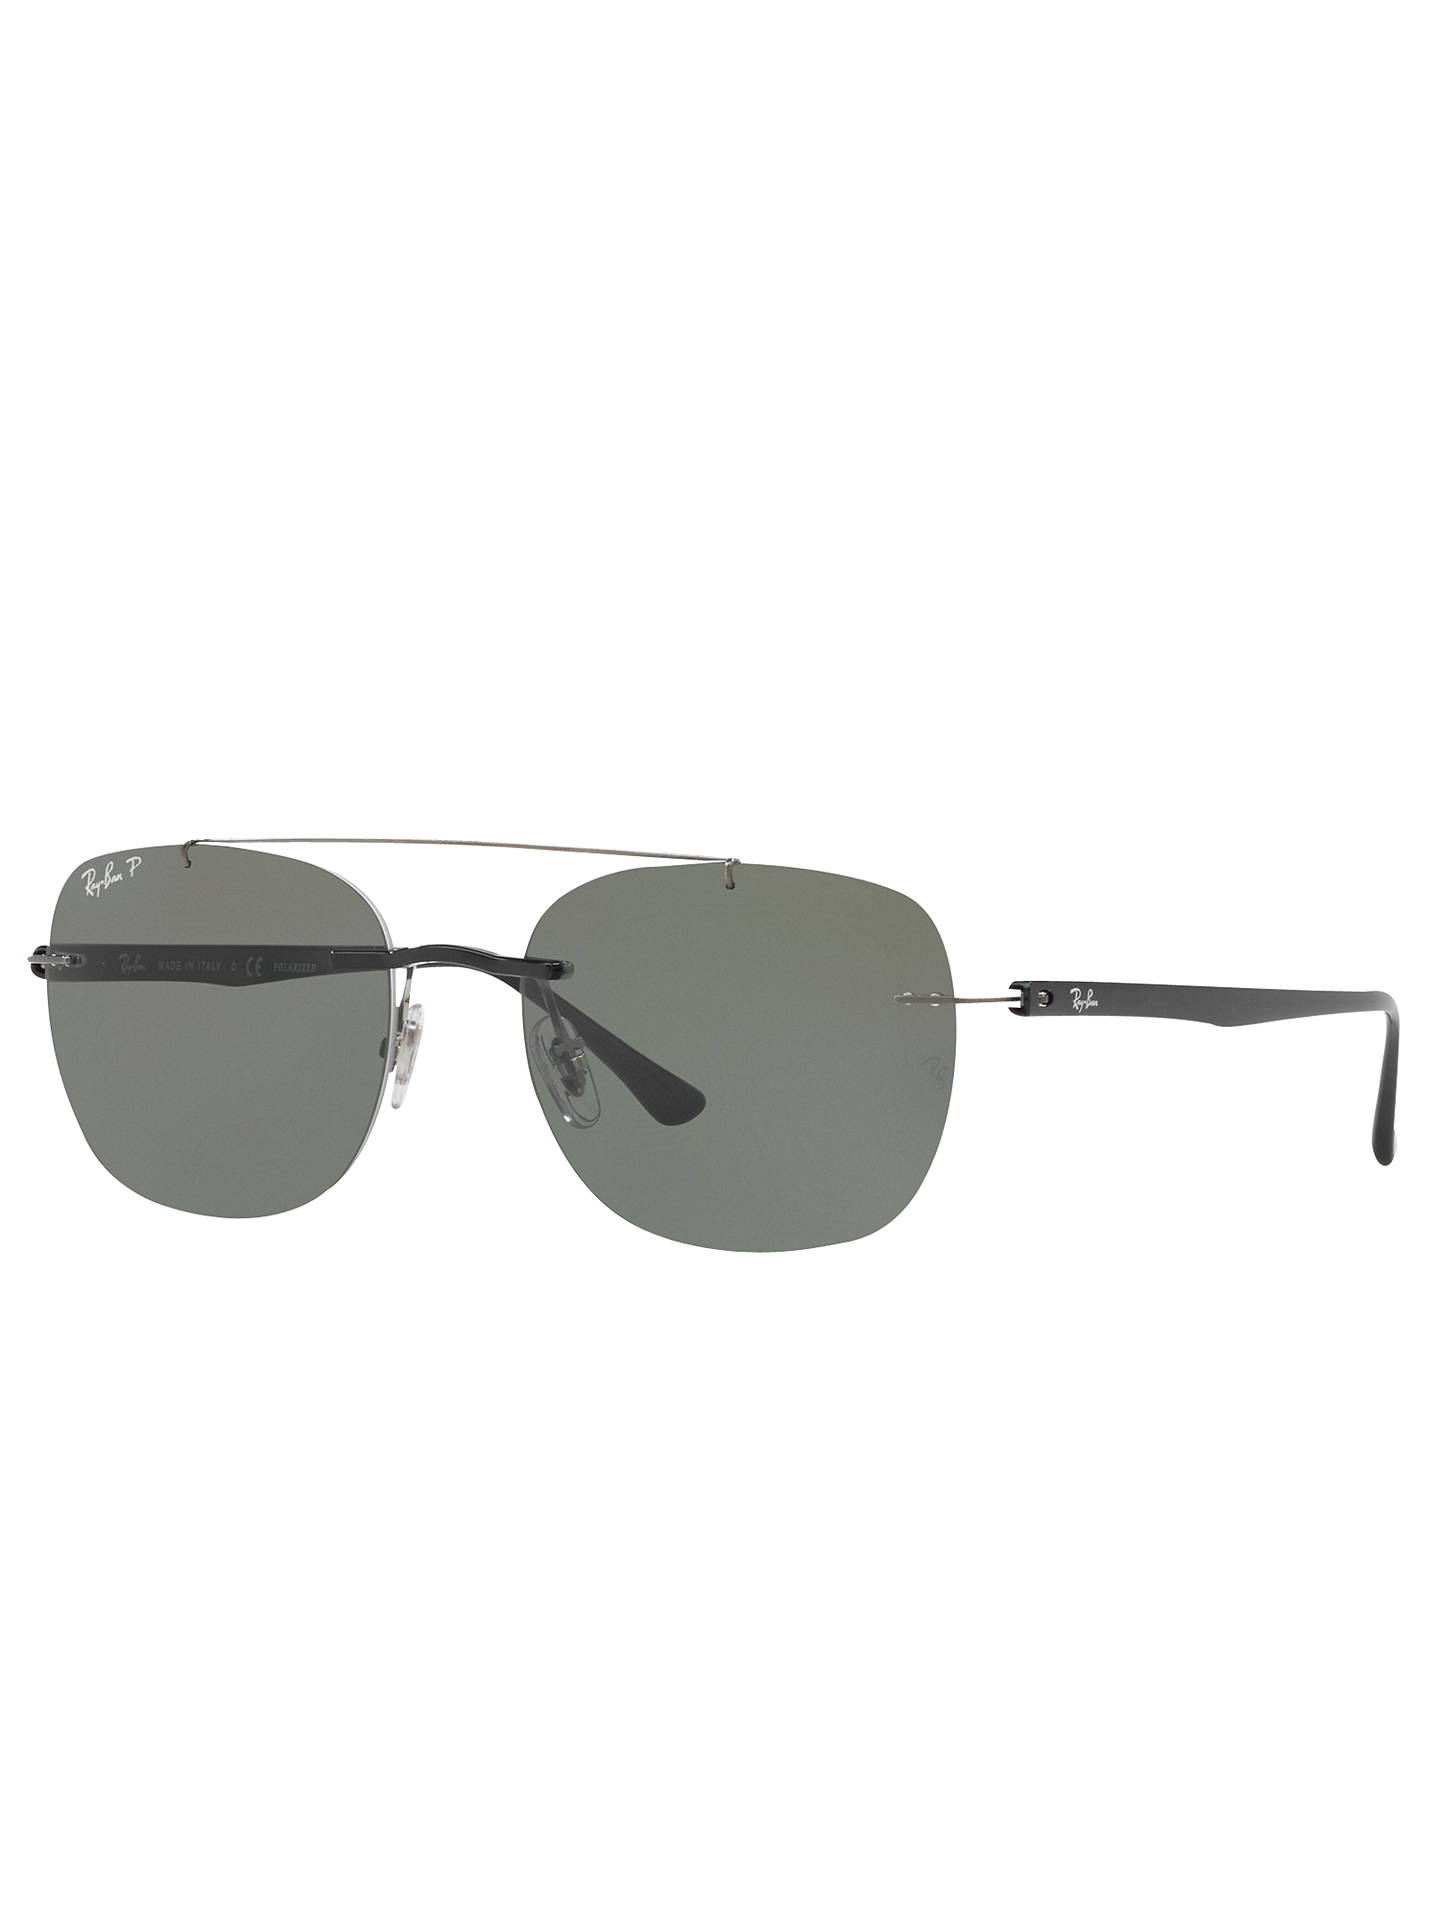 BuyRay-Ban RB4280 Polarised Square Sunglasses, Silver/Grey Online at johnlewis.com